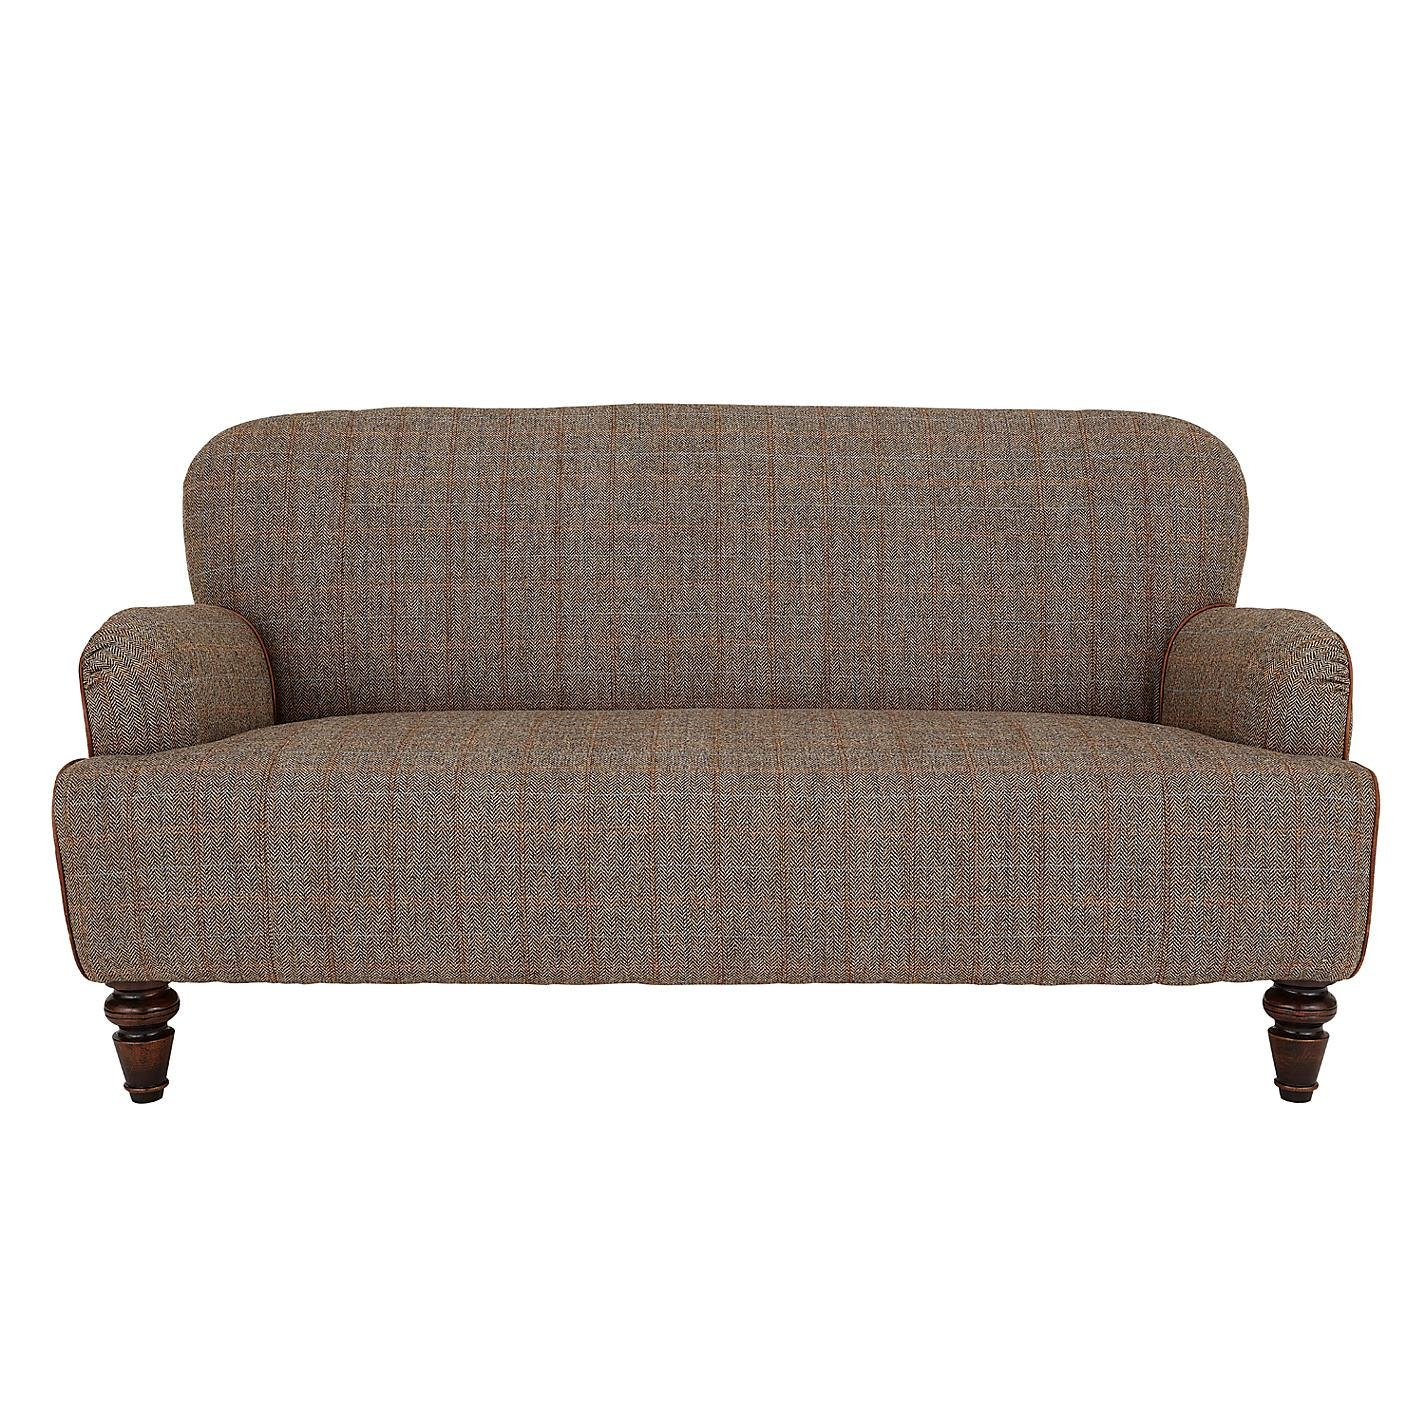 Featured Image of Tweed Fabric Sofas